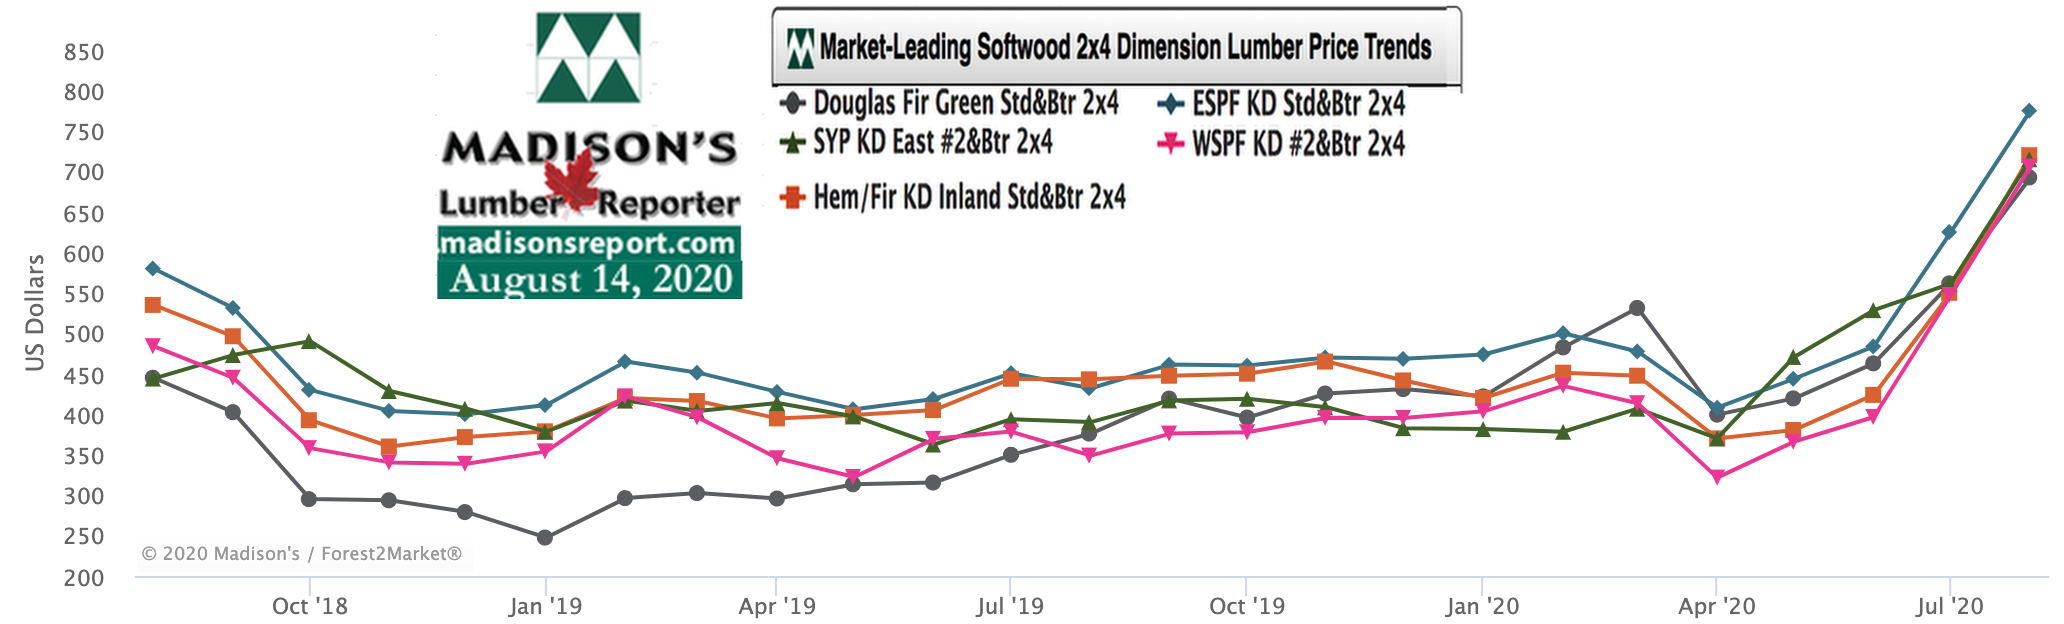 Softwood Lumber Movers & Shakers: green and KD Construction Framing Dimension Lumber Prices AUG 2020